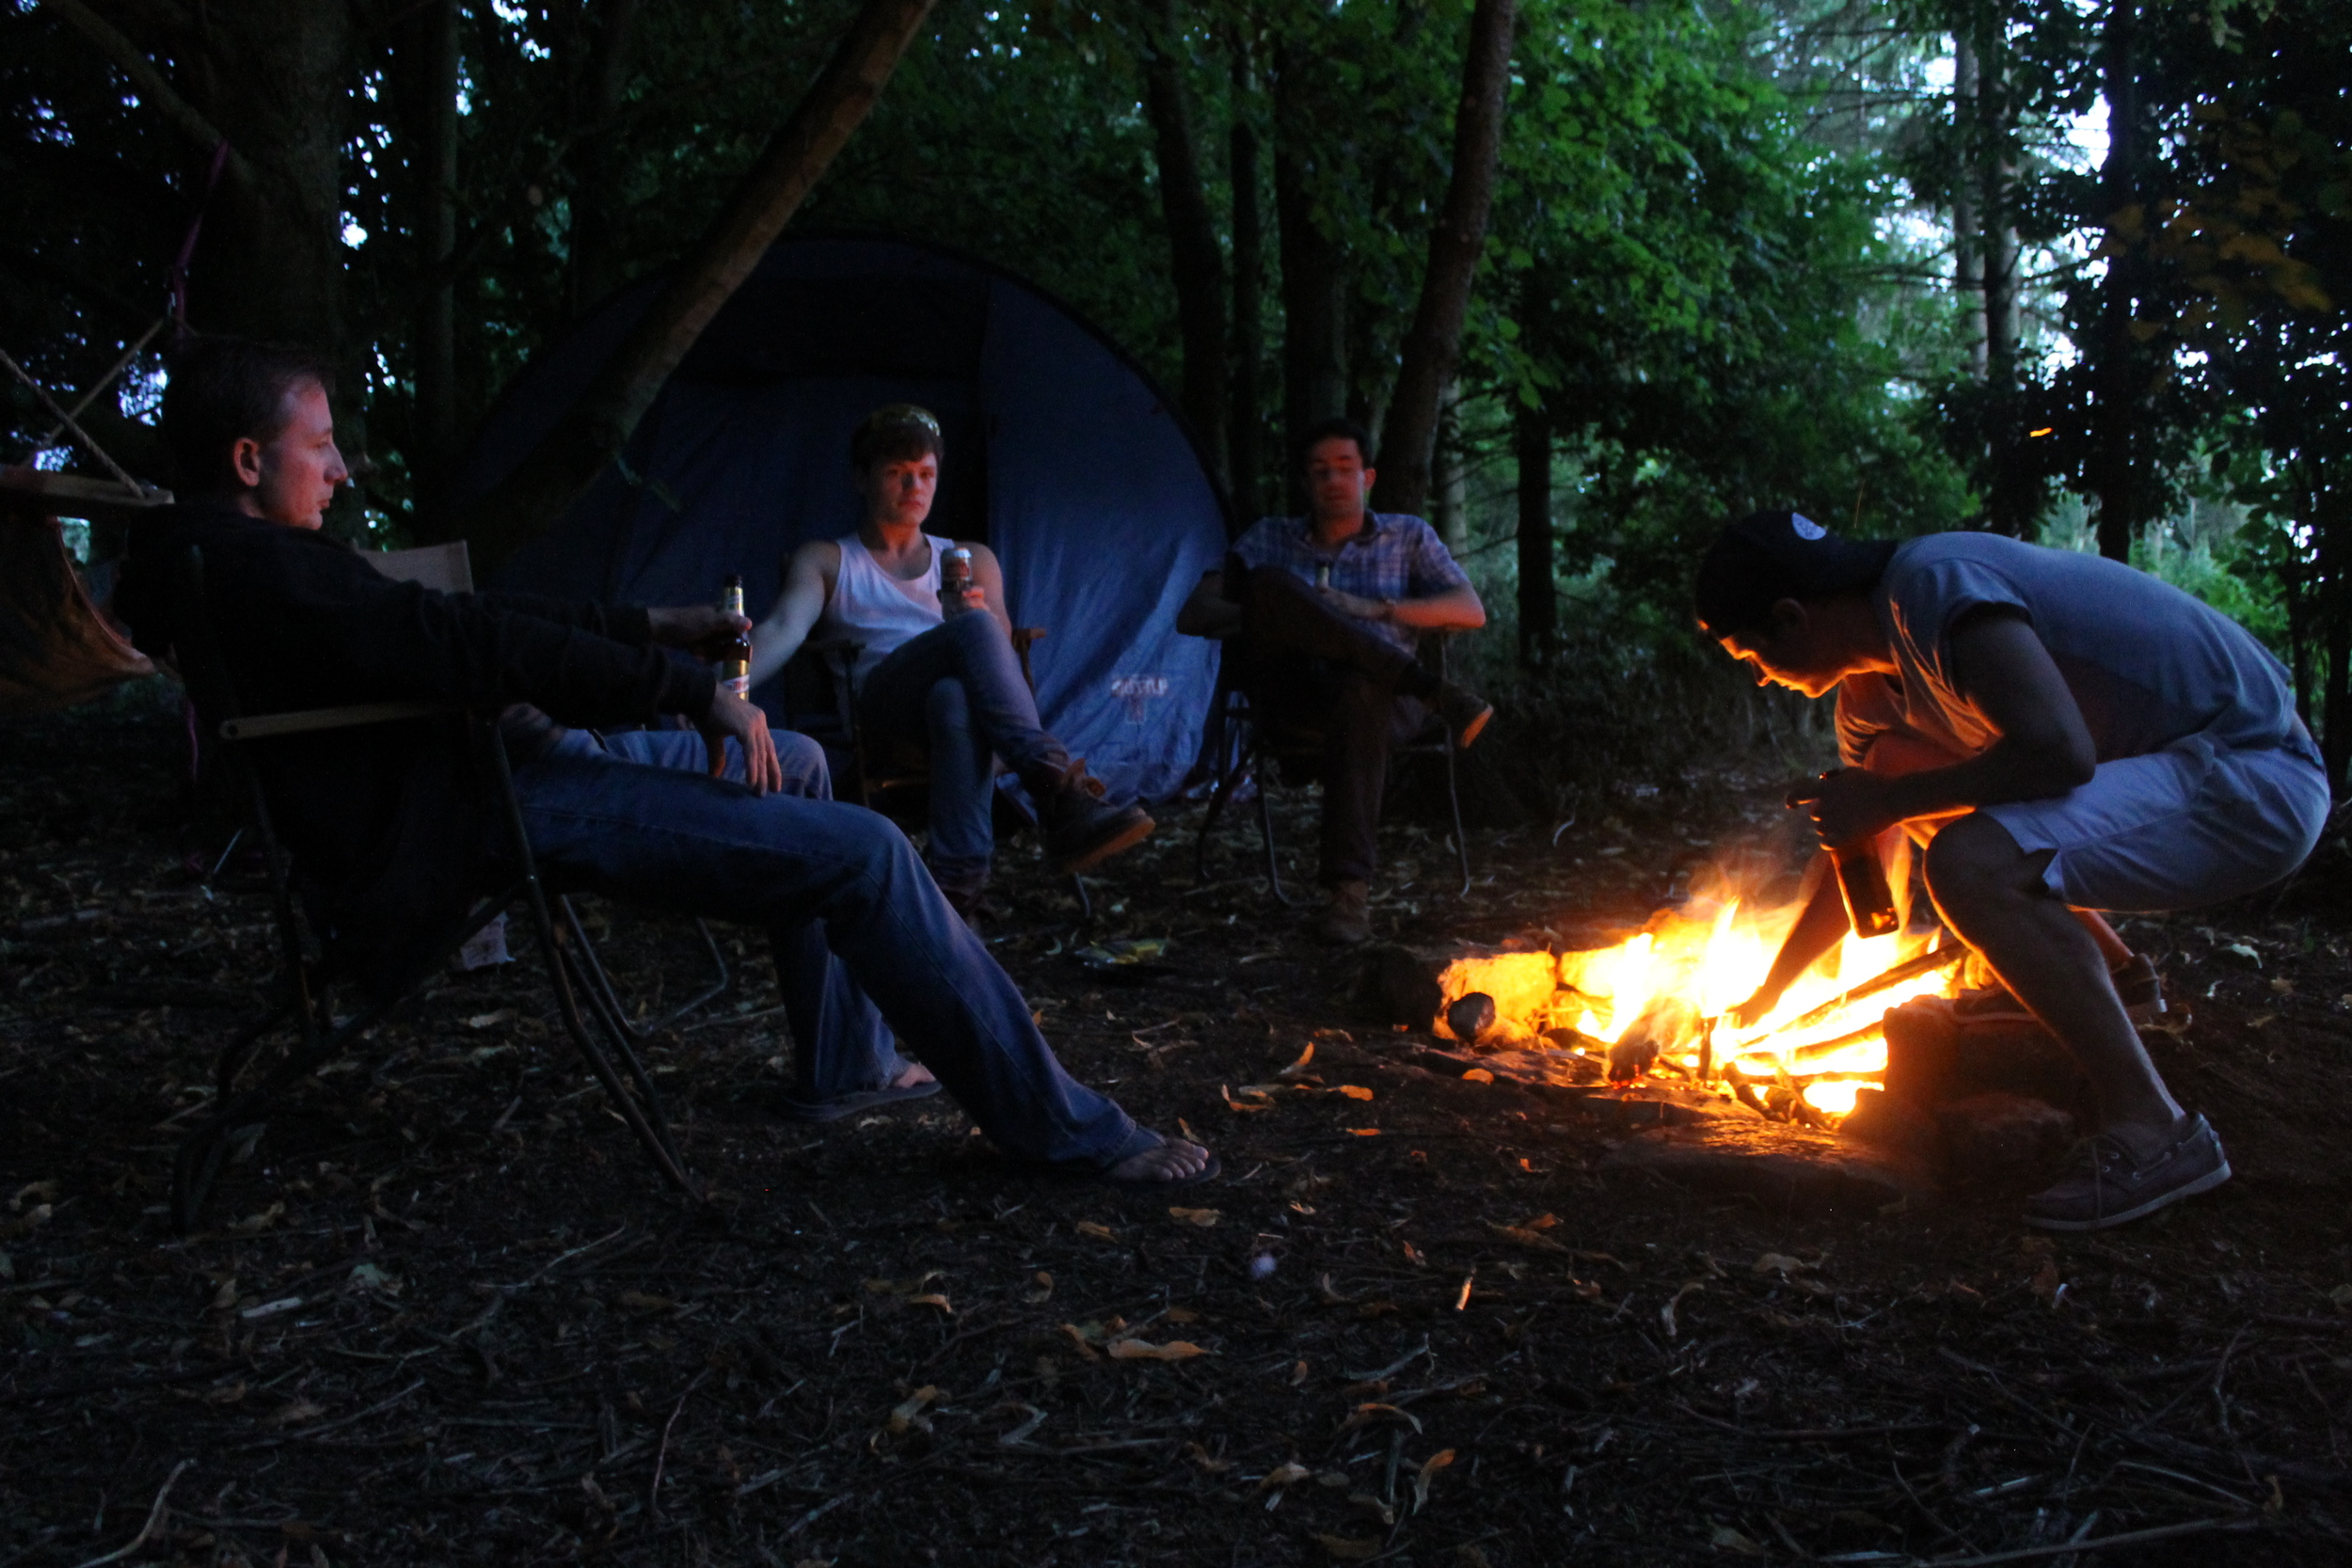 Relaxation by the campfire after a day's carving.